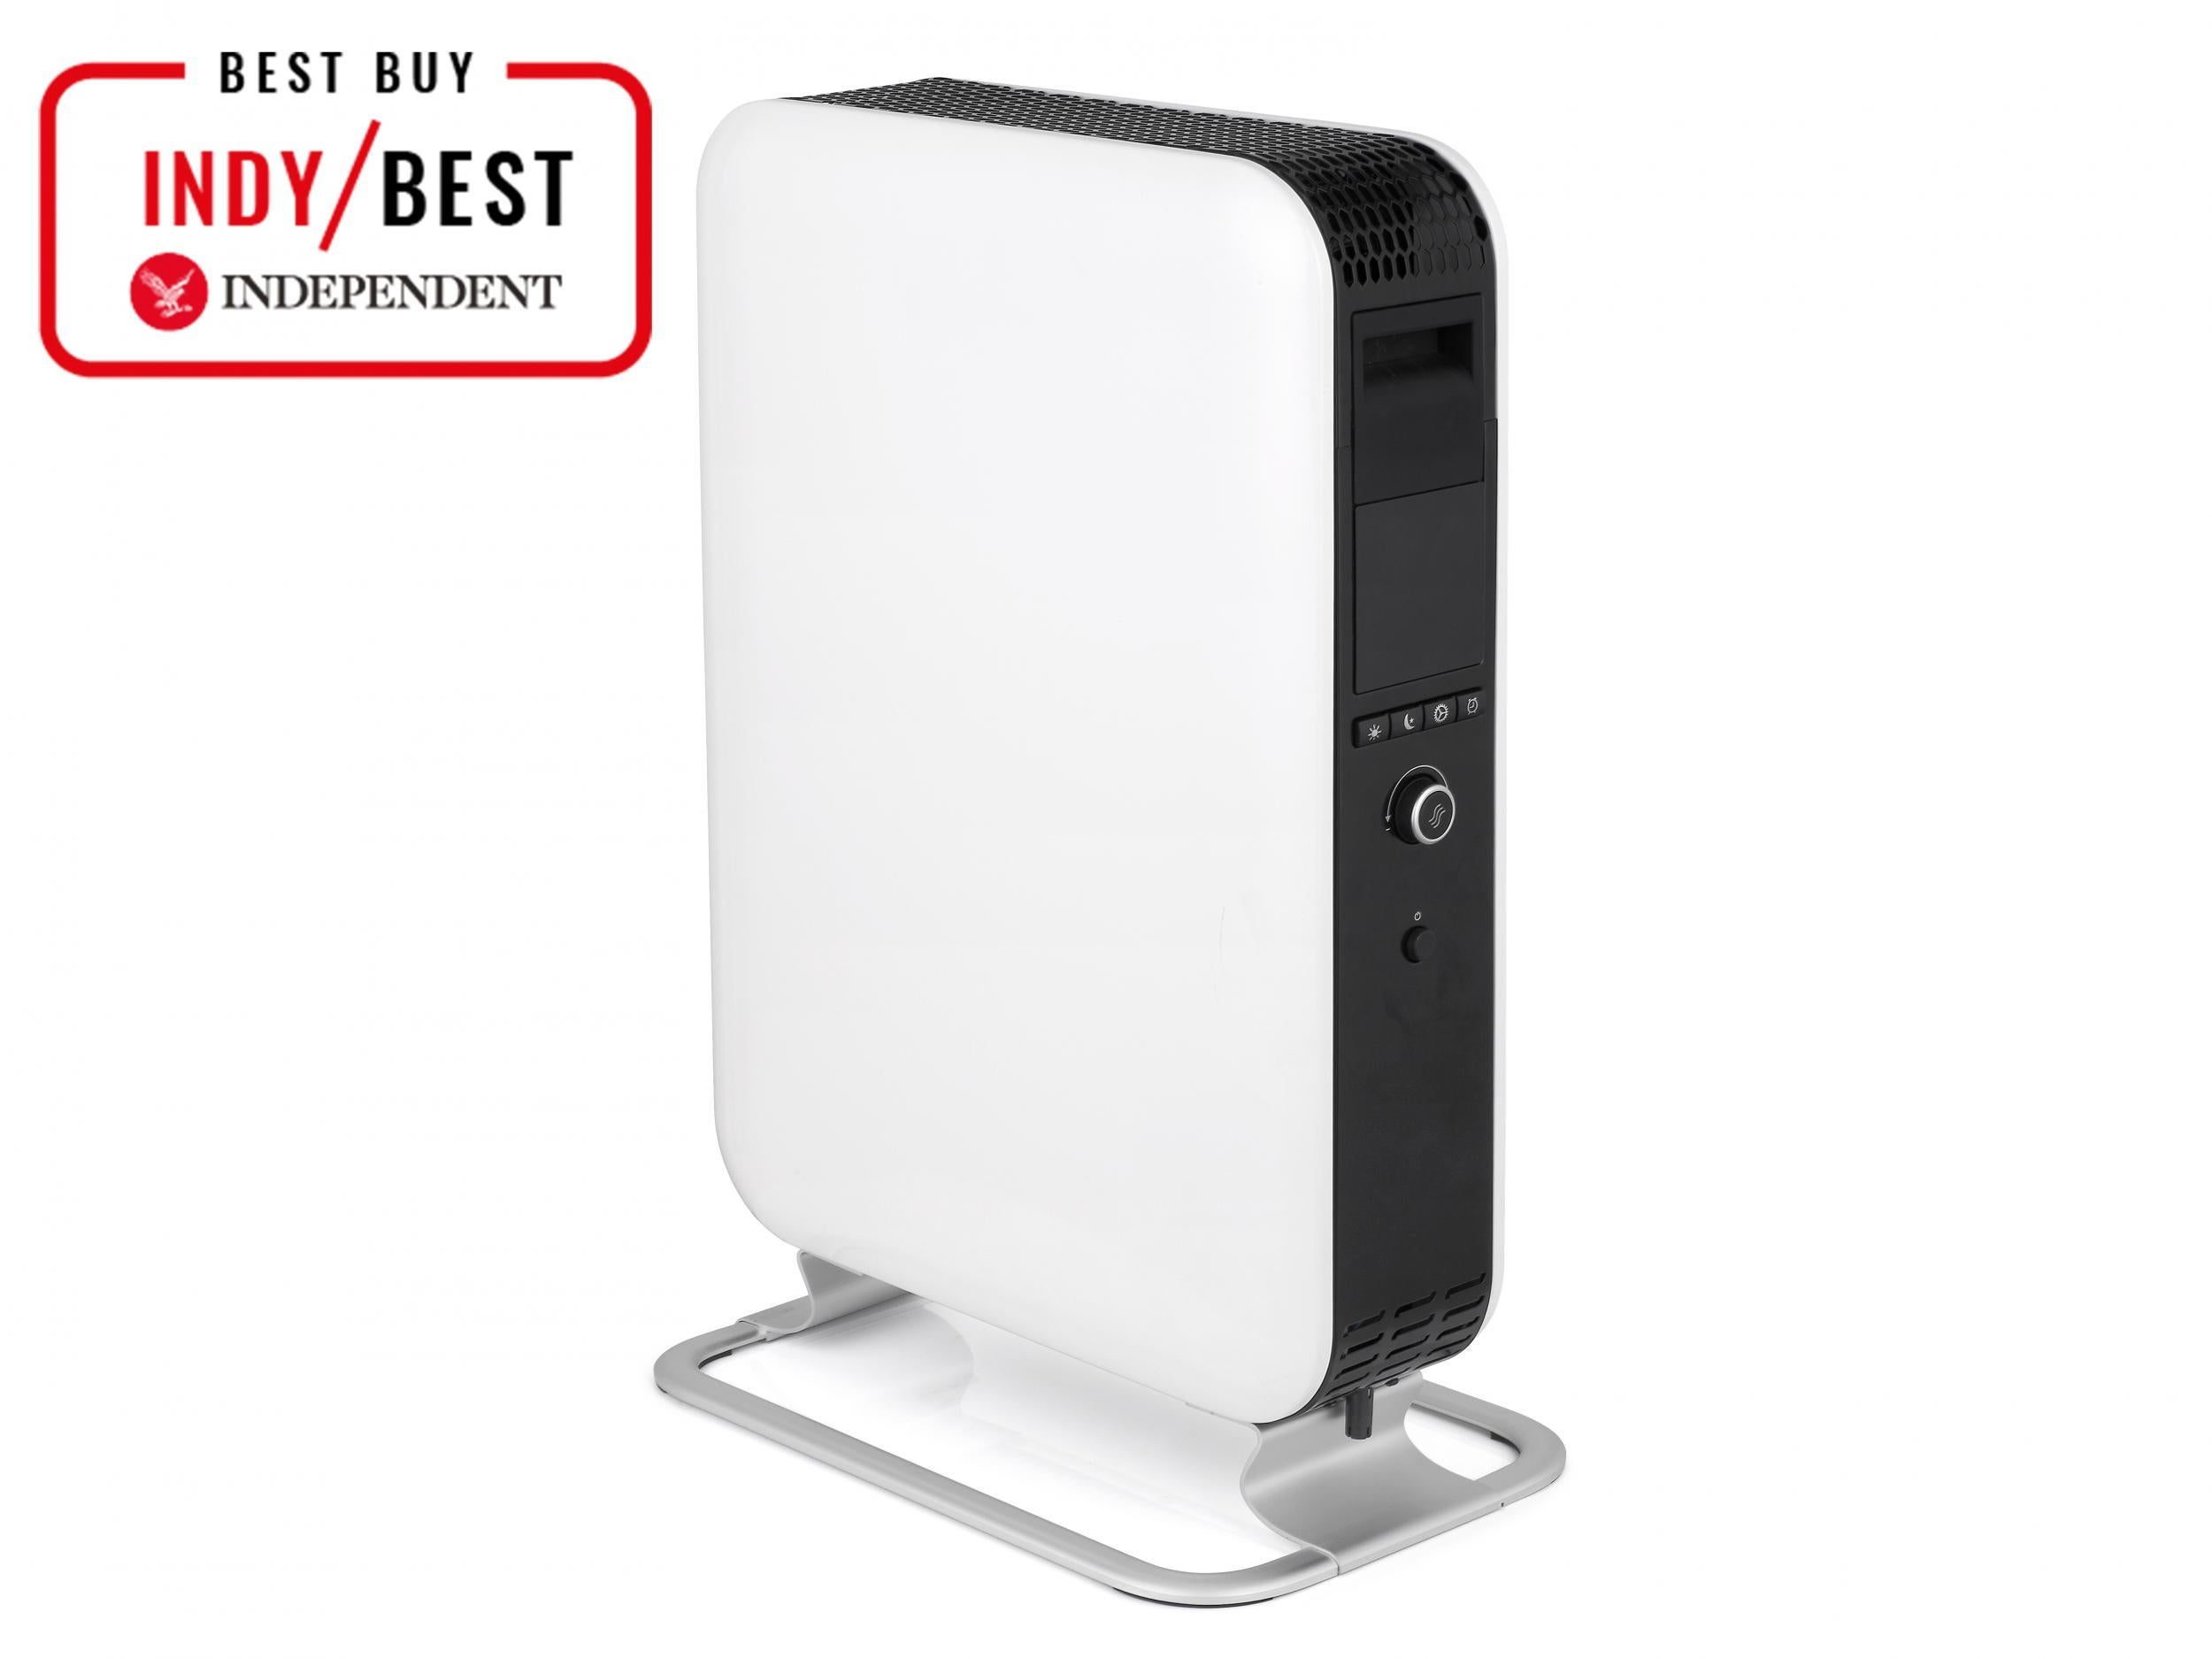 9 best portable heaters | The Independent